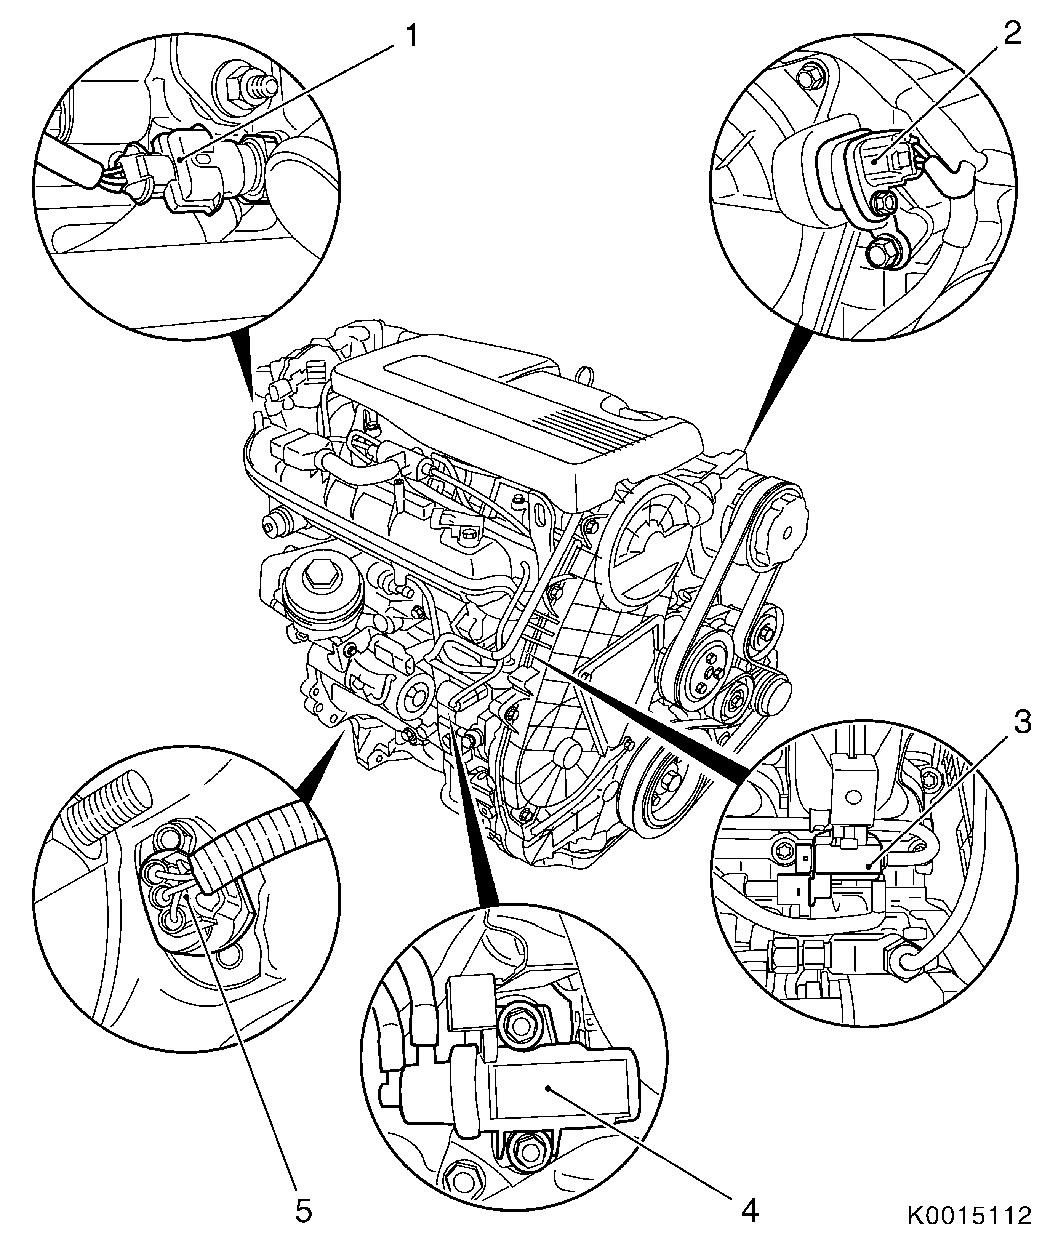 Vauxhall Workshop Manuals Gt Corsa D Gt J Engine And Engine Aggregates Gt Fuel Injection Systems